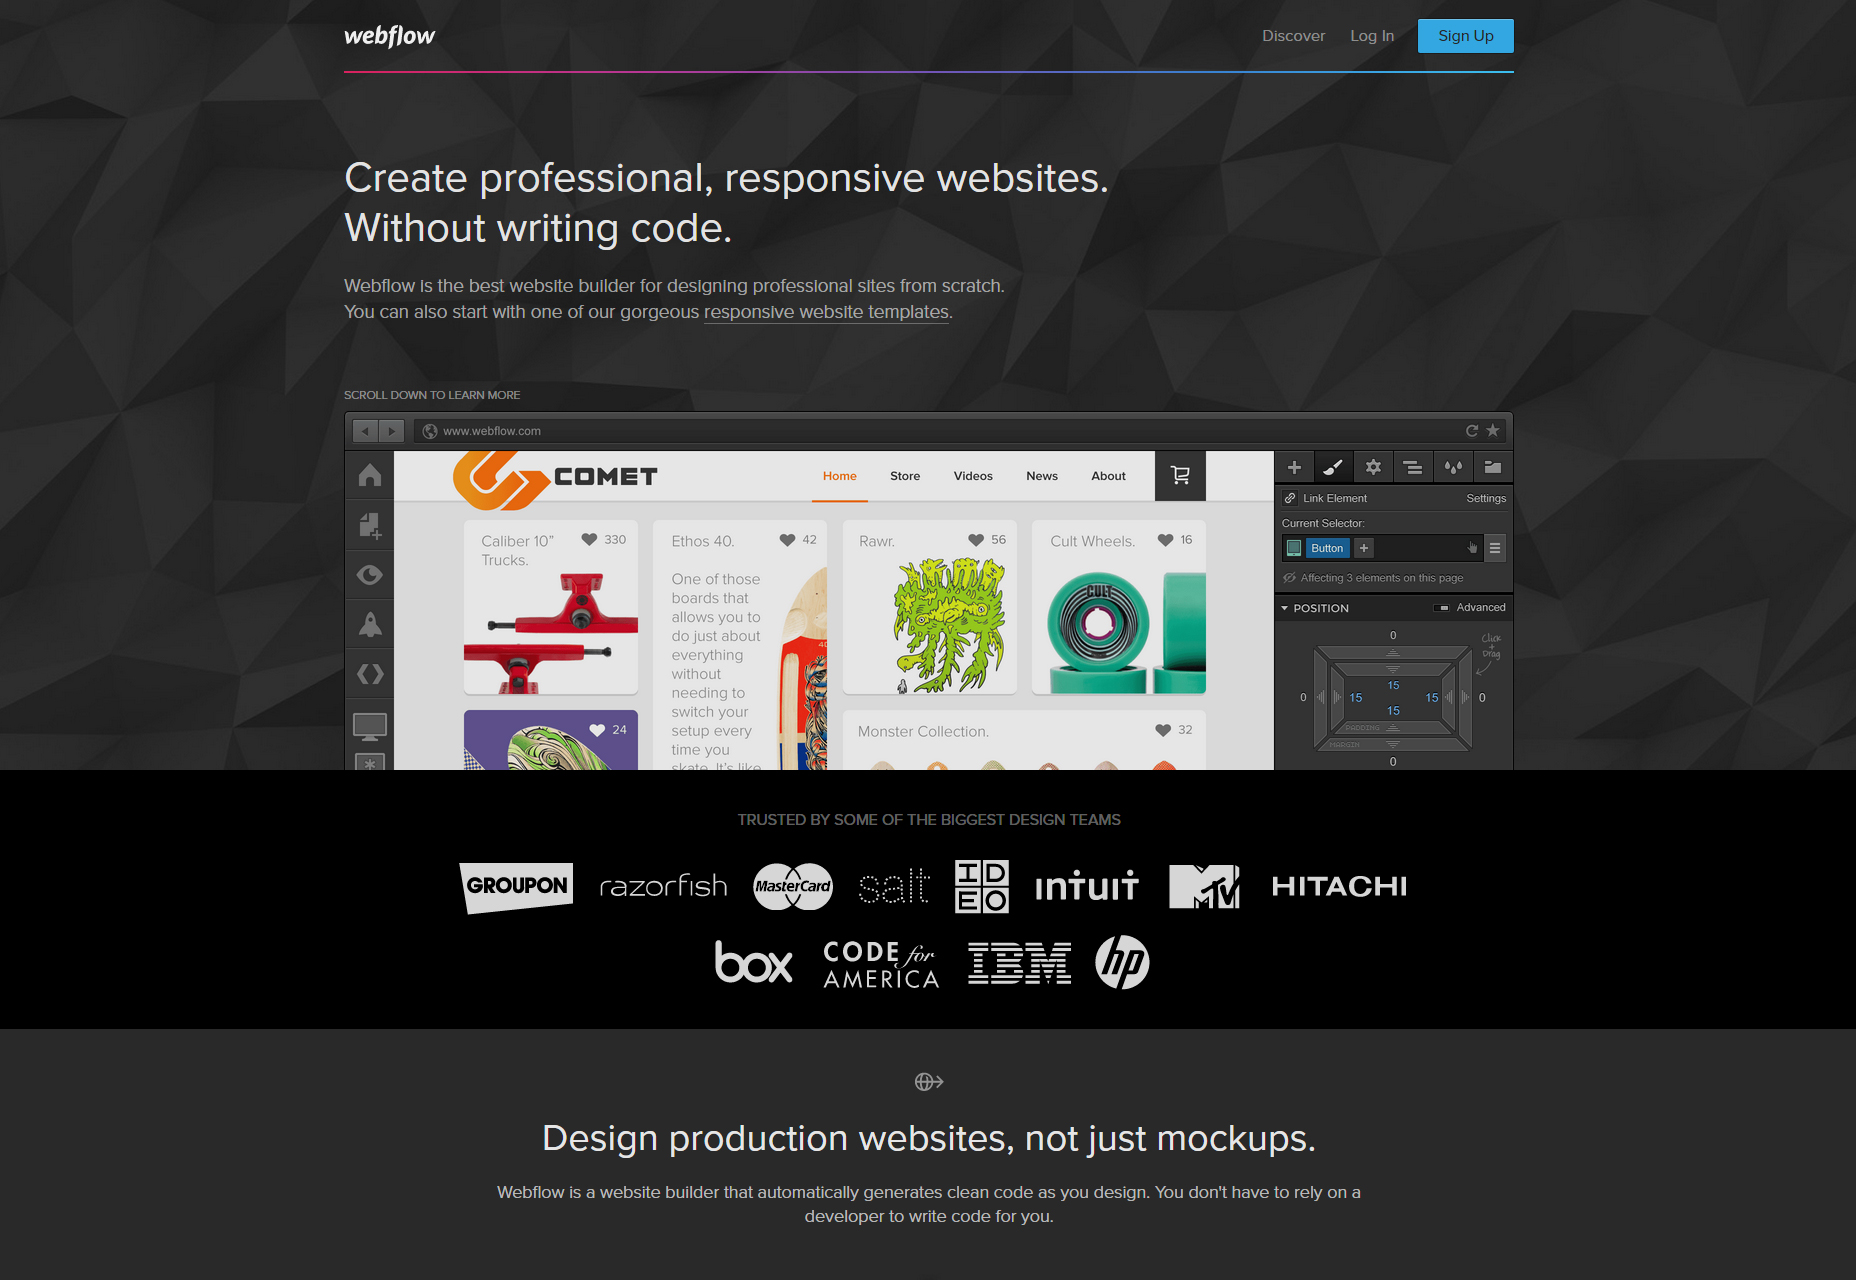 webflow-design-focused-website-builder